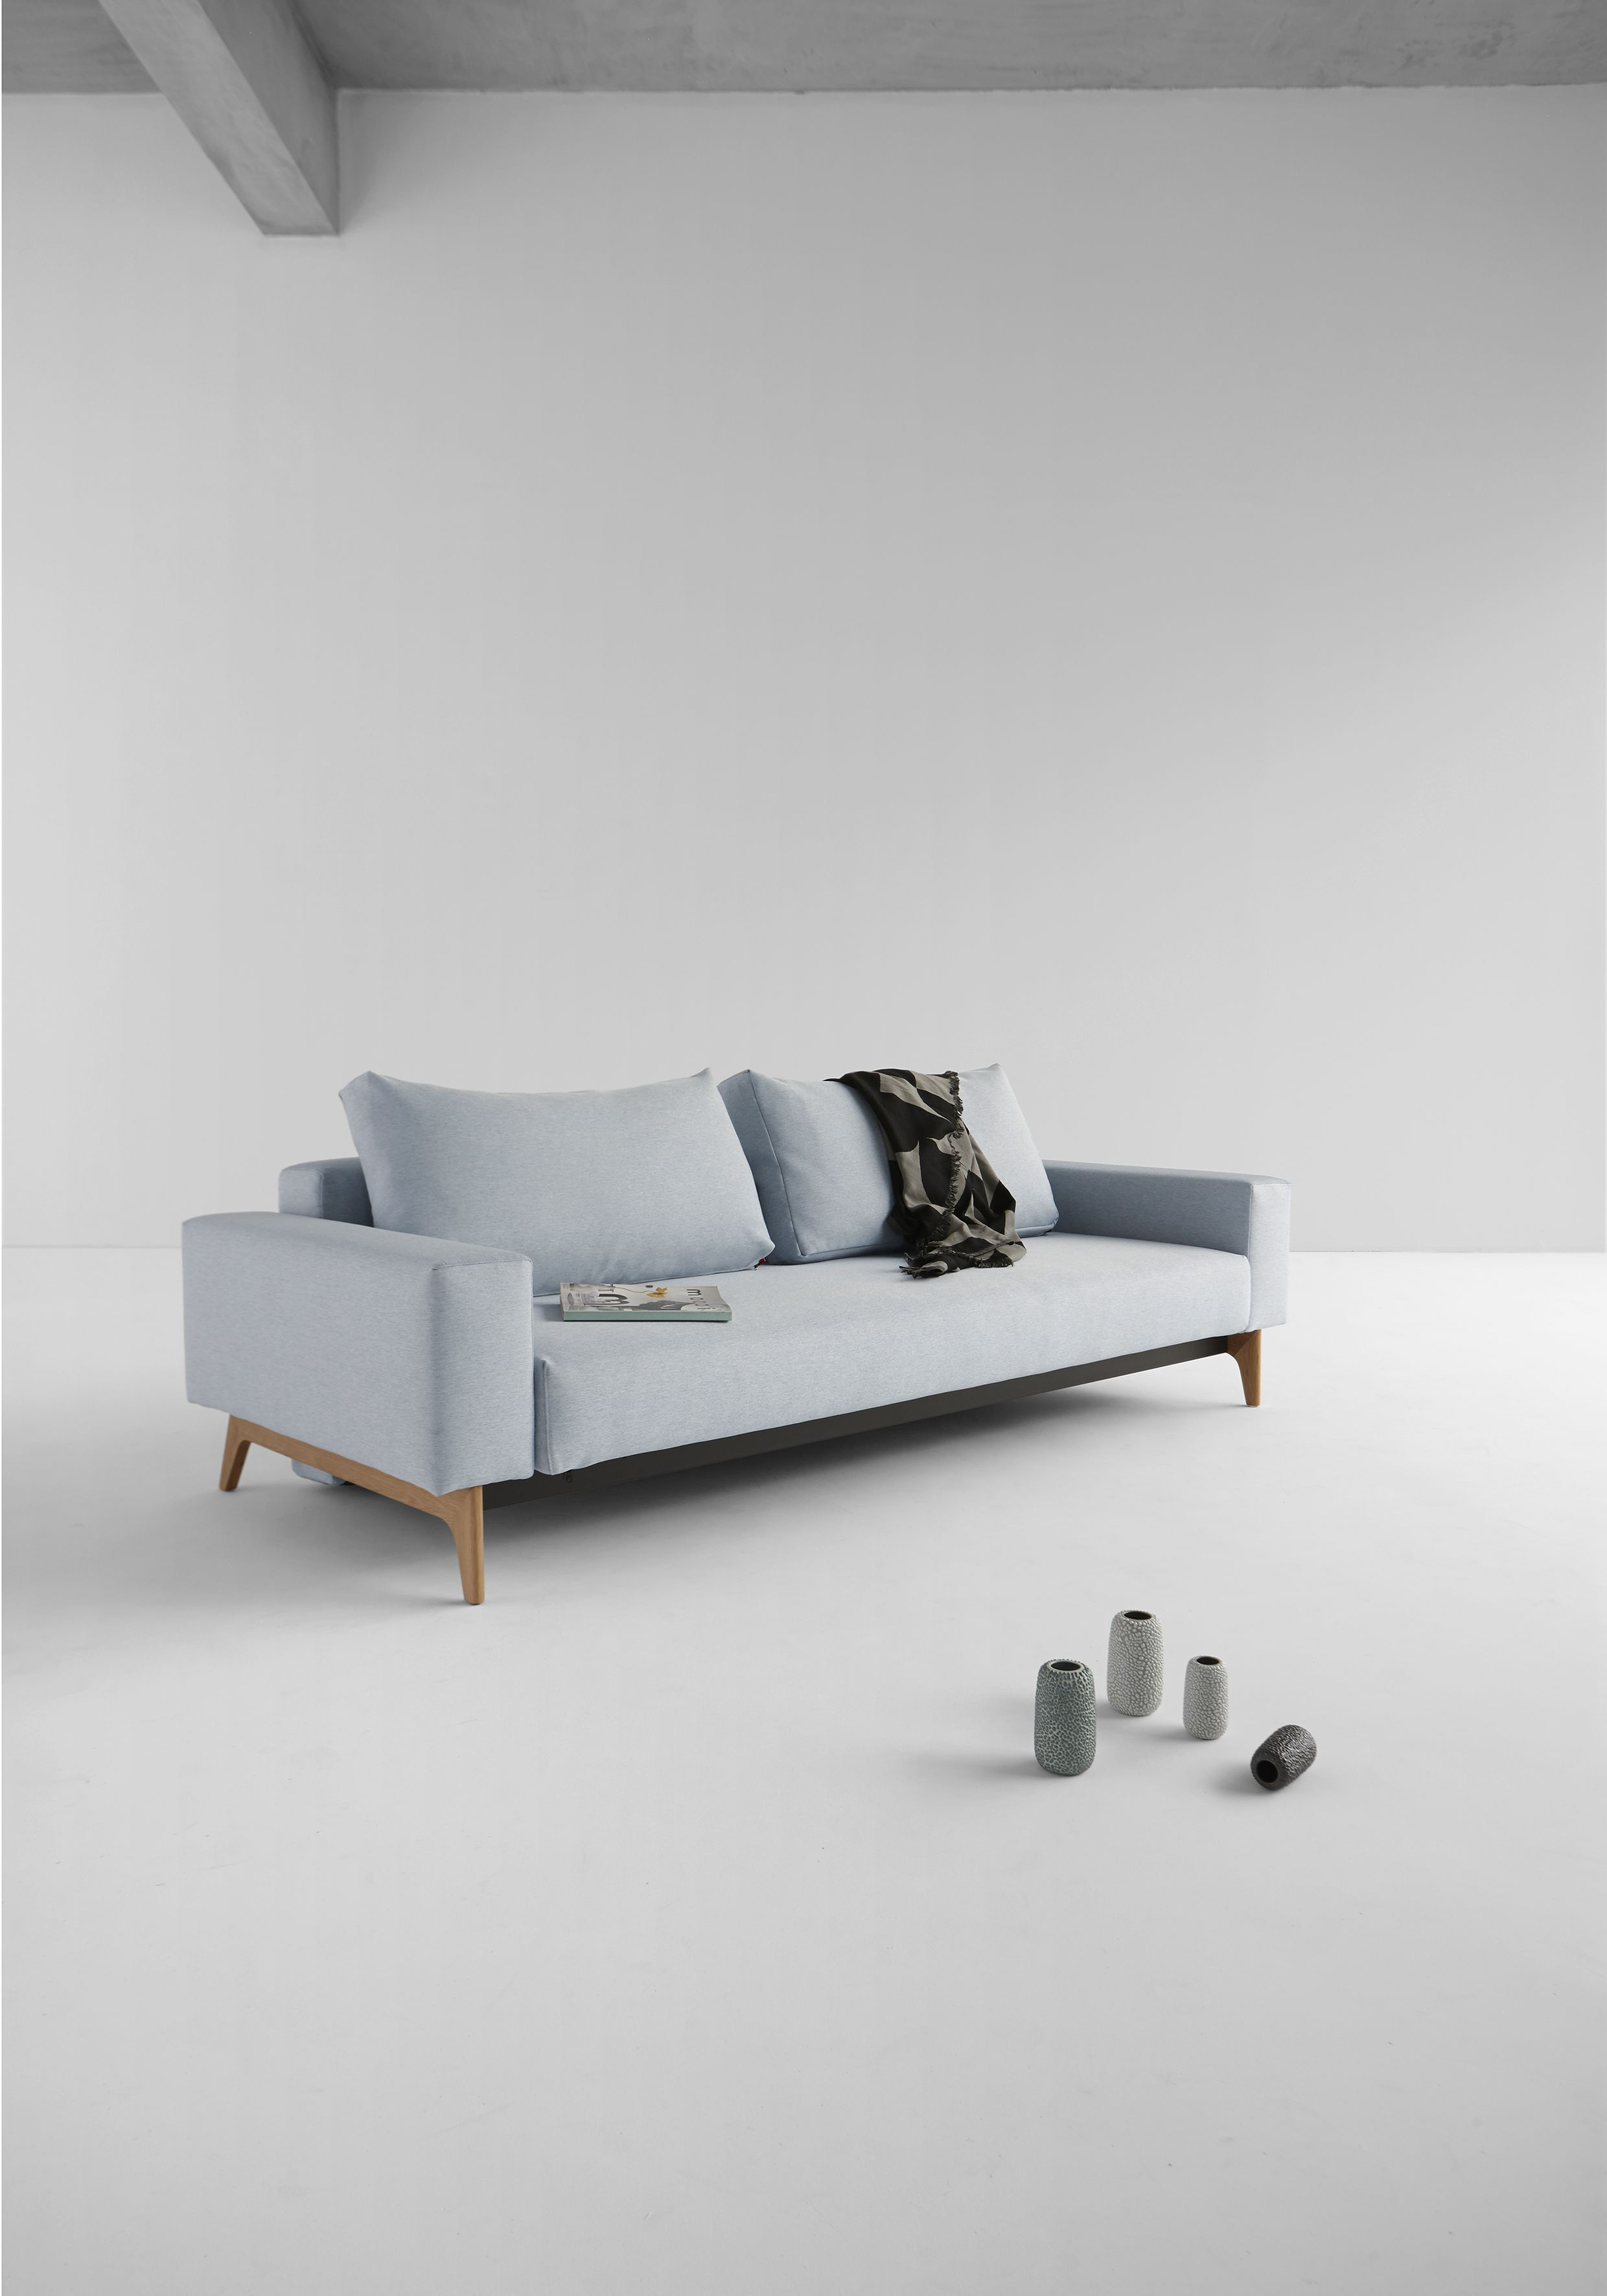 Idun Deluxe Double Sofa Bed - Innovation Living | Sofa ...